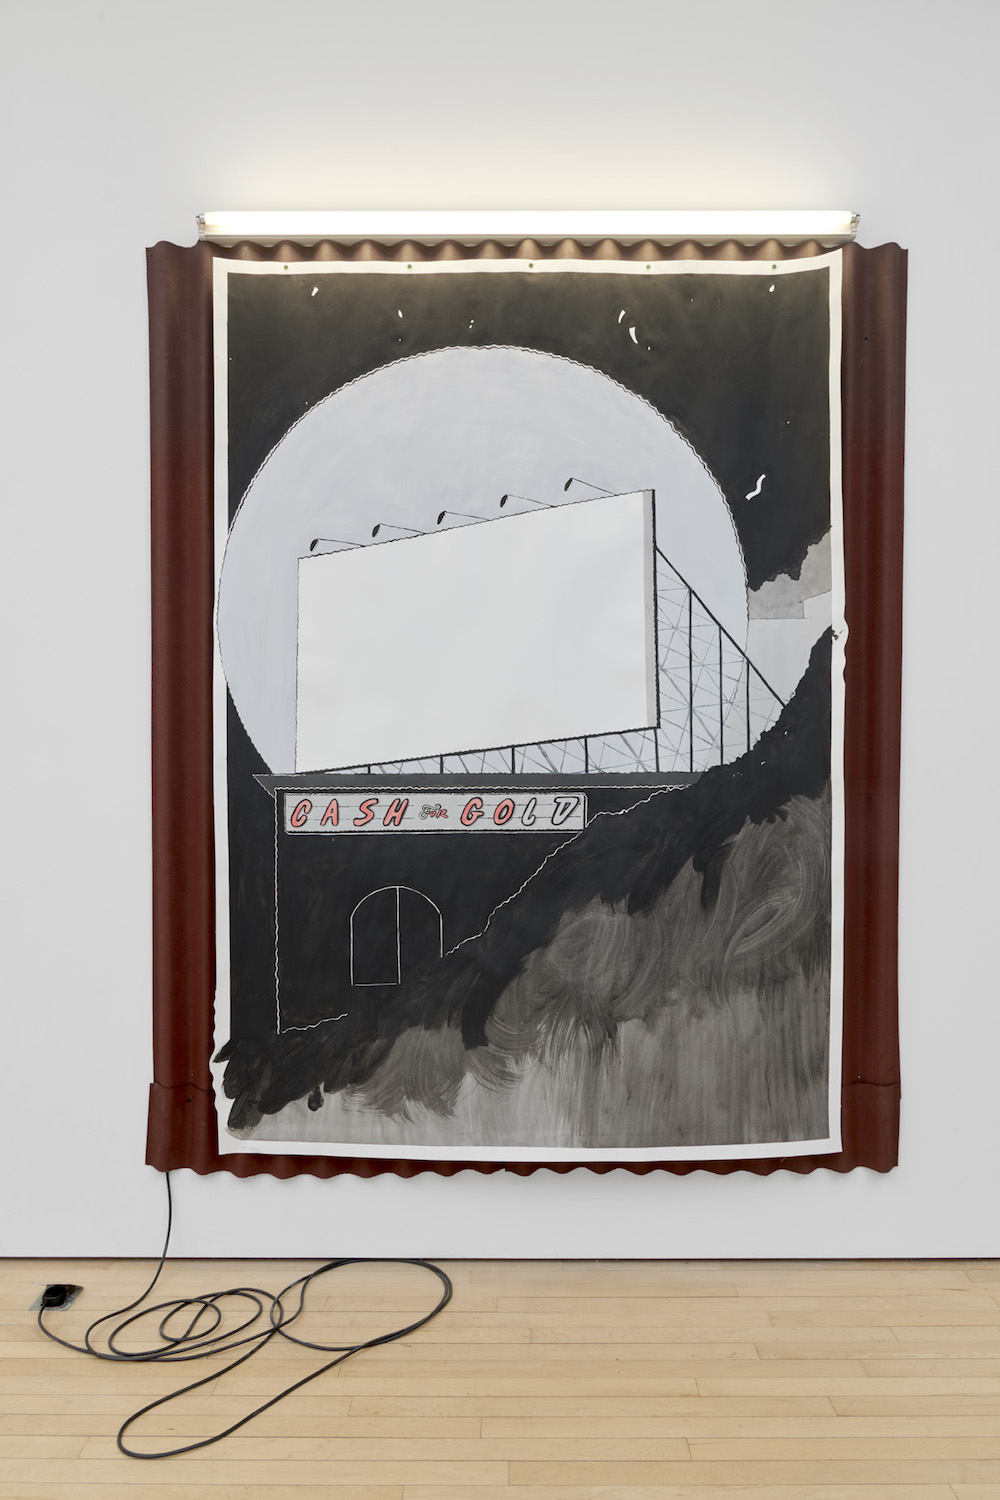 Charlie Godet Thomas, Cash or Go, 2019. Paint on Fabriano paper, map pins, corrugated bitumin, tape, fluorescent light fittings, fluorescent bulbs, cable flex, lighting gel, mains plugs. 170 x 220 x 5 cm.